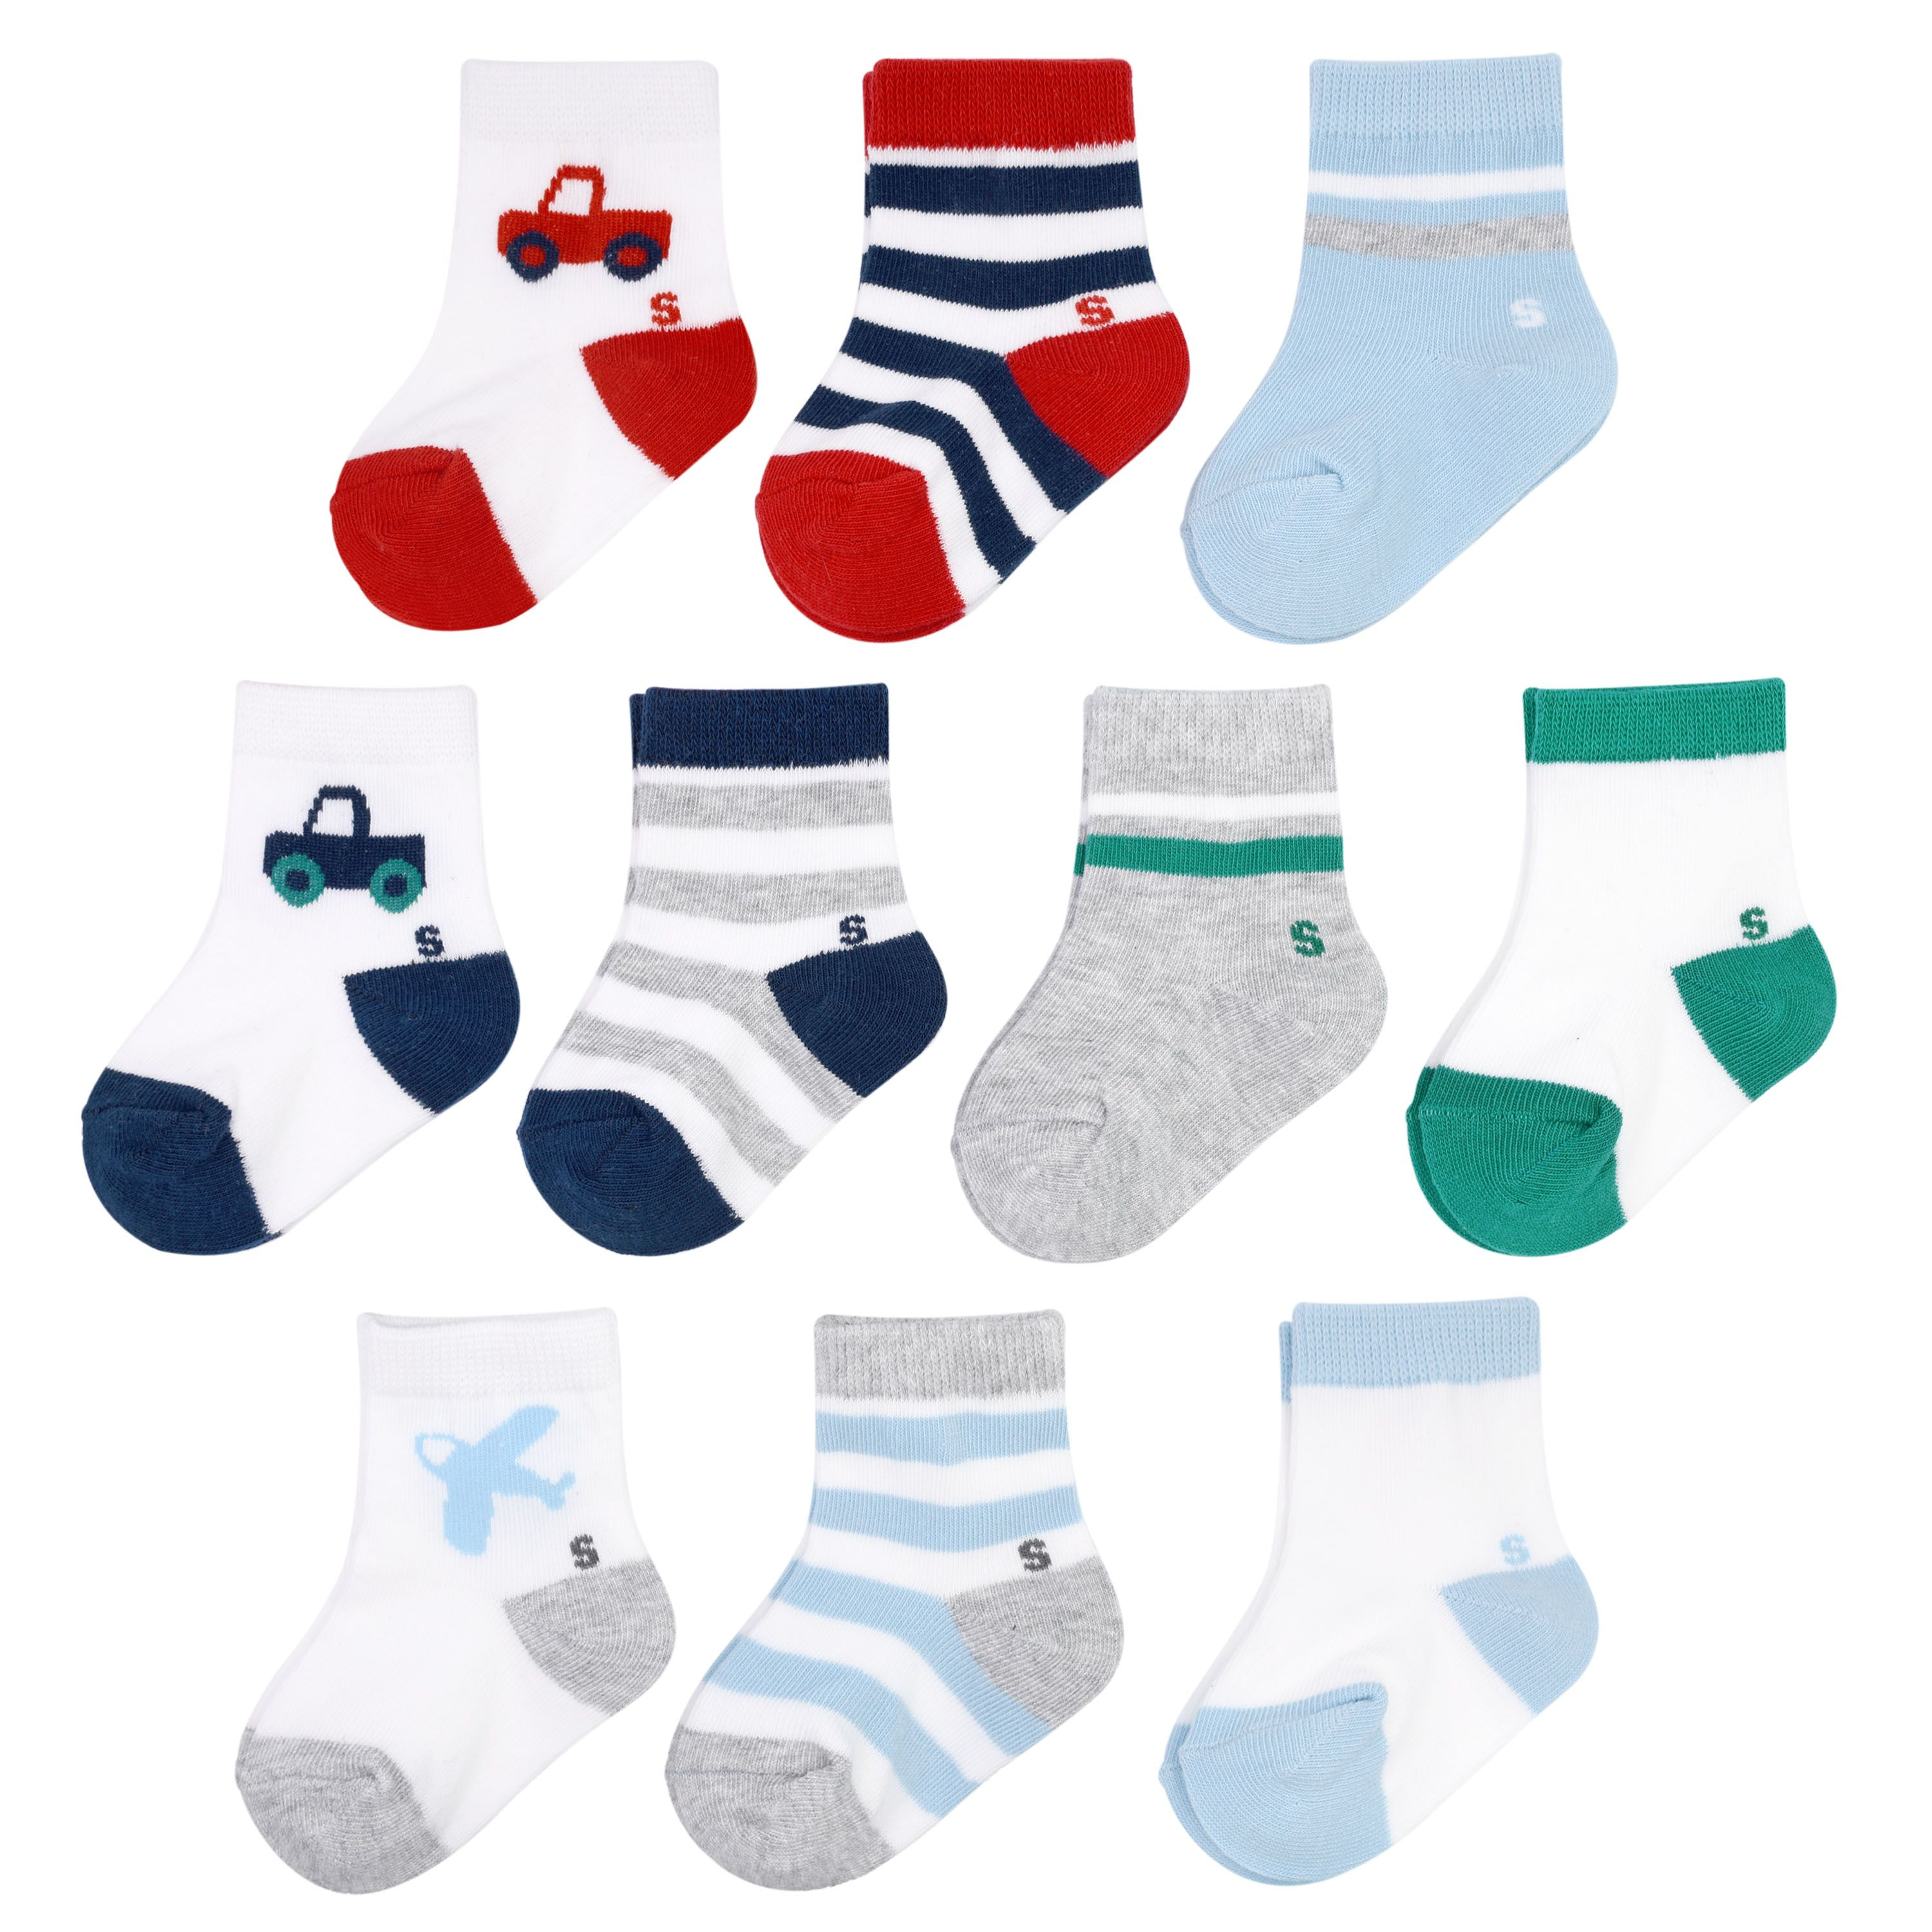 Baby Boy Jumping Beans 10 Pack Crew Socks Available At Kohl S Baby Socks Baby Boy Outfits Socks